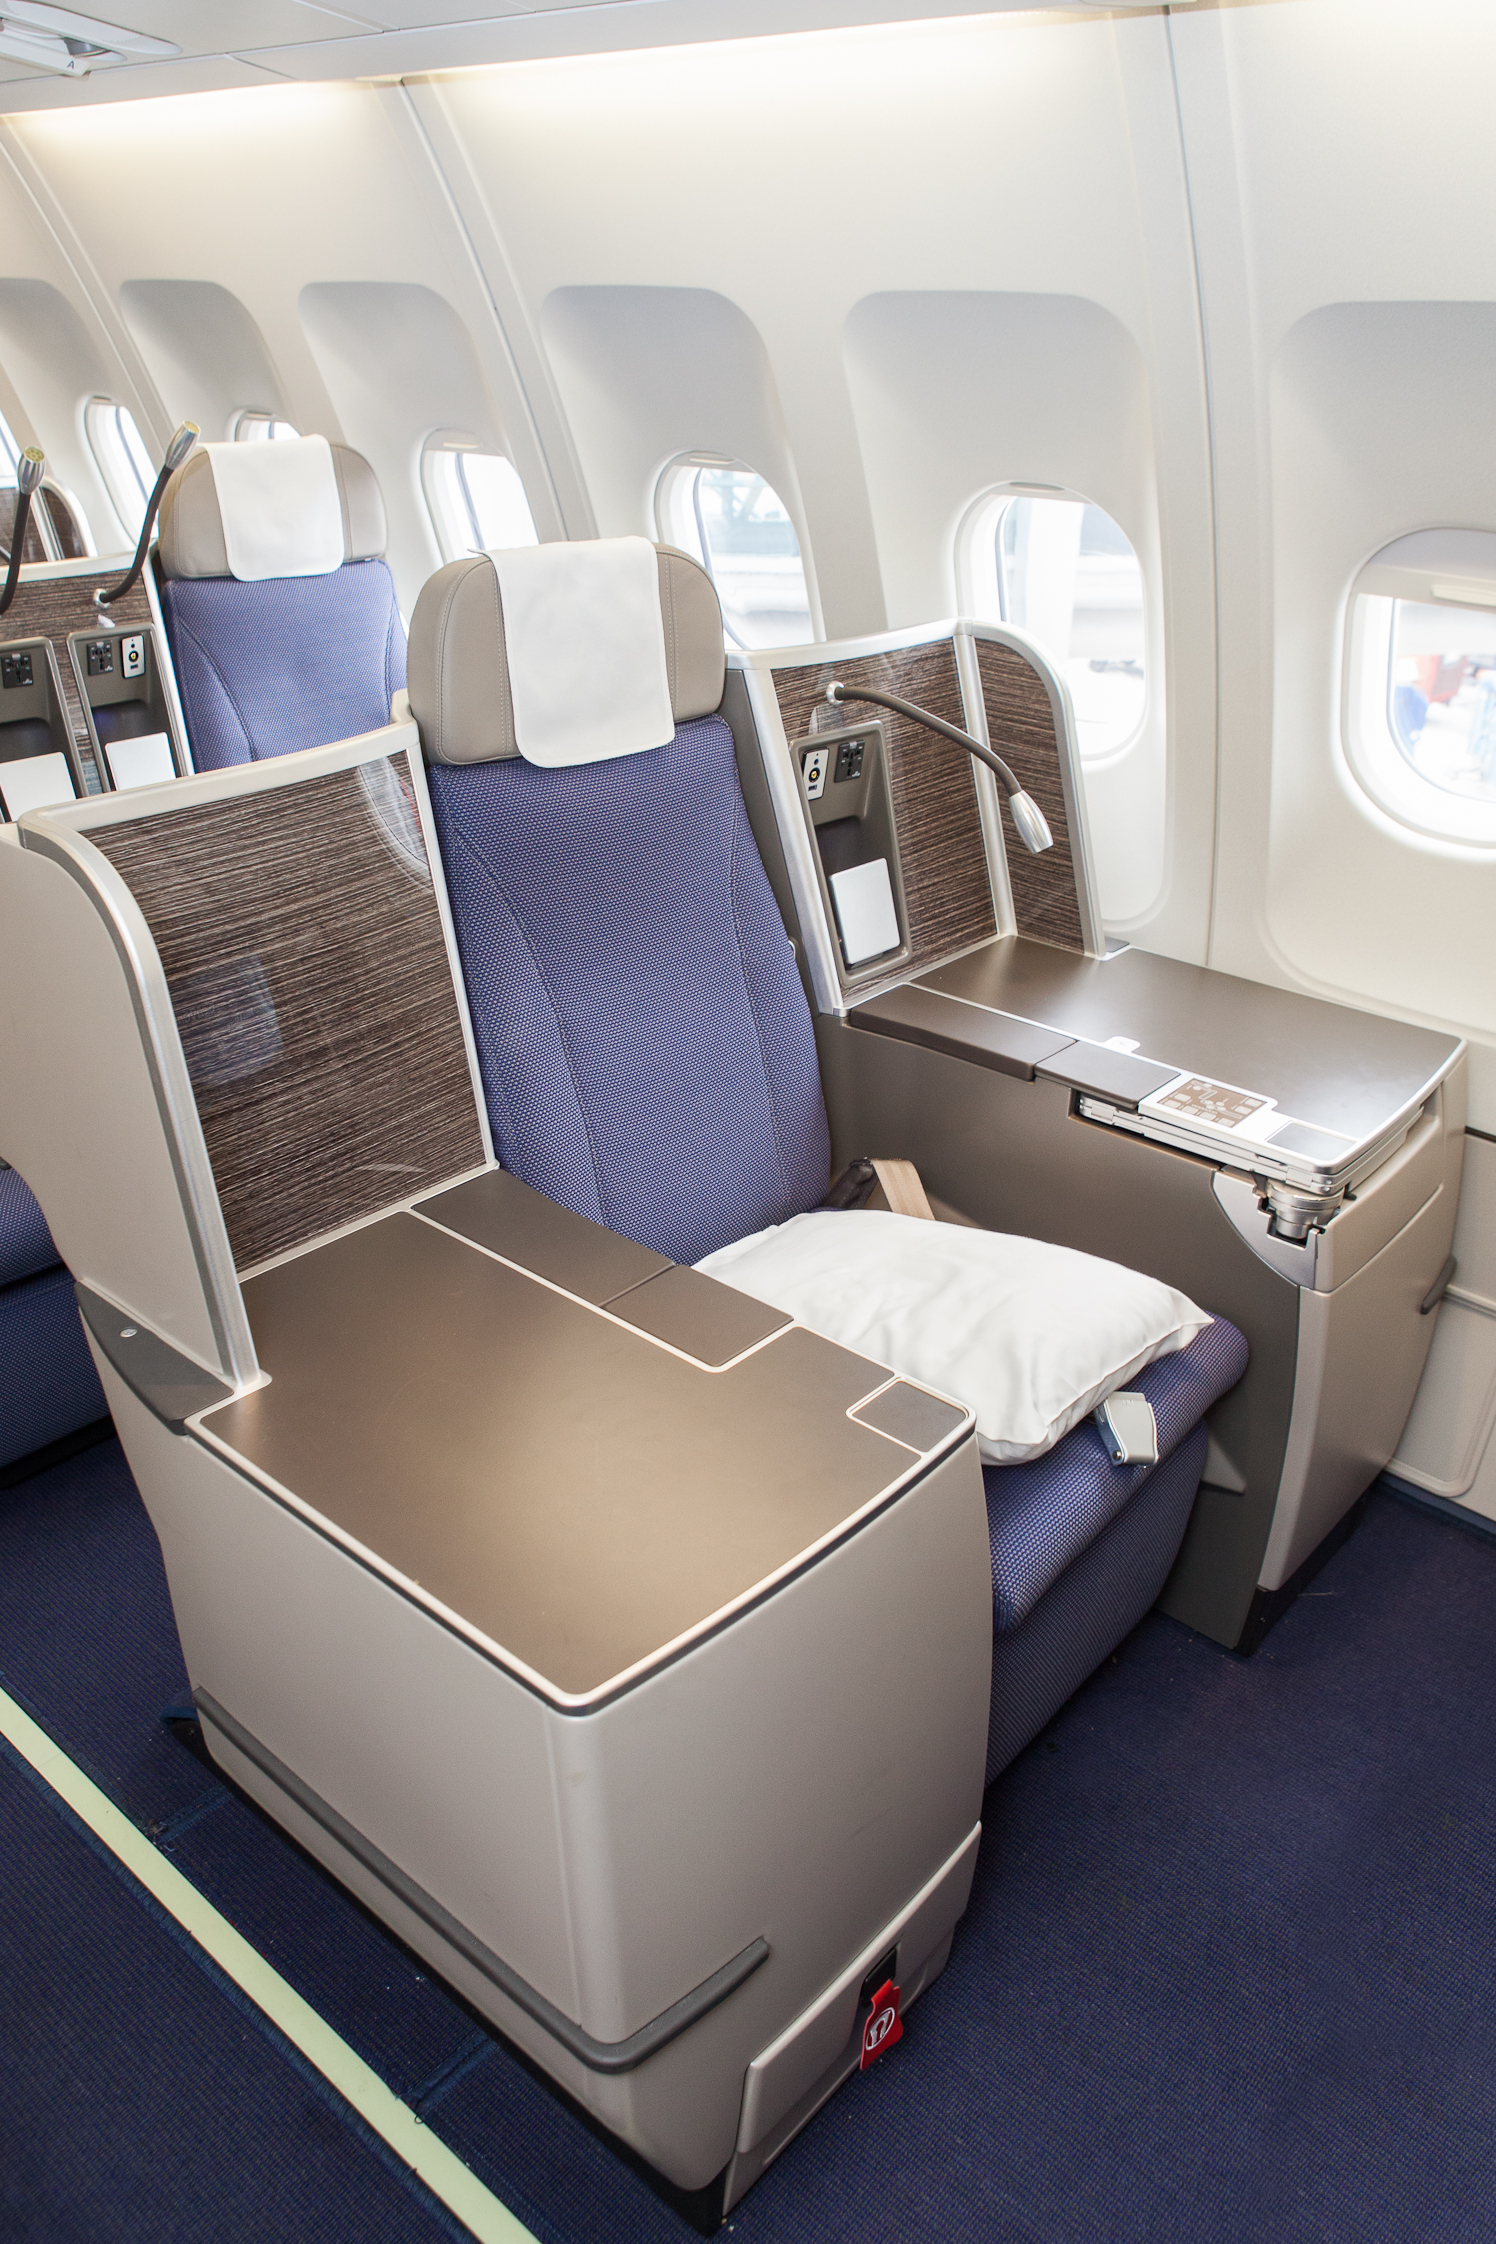 Brussels Airlines New Business Class King Seat A330 300